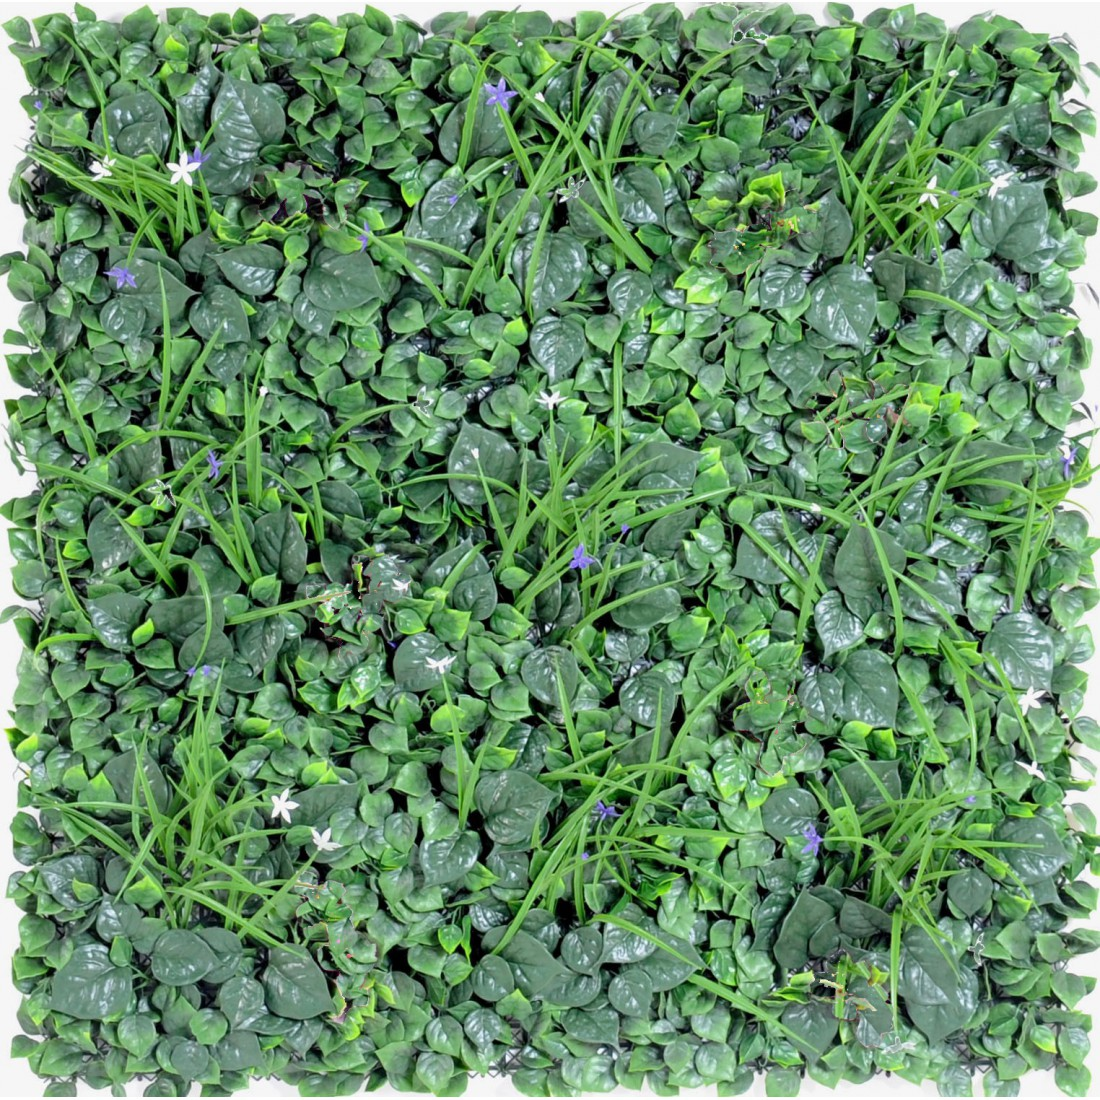 Mur vegetal d 100 x 100 cm plaques synth tique reflets for Mur vegetal exterieur synthetique